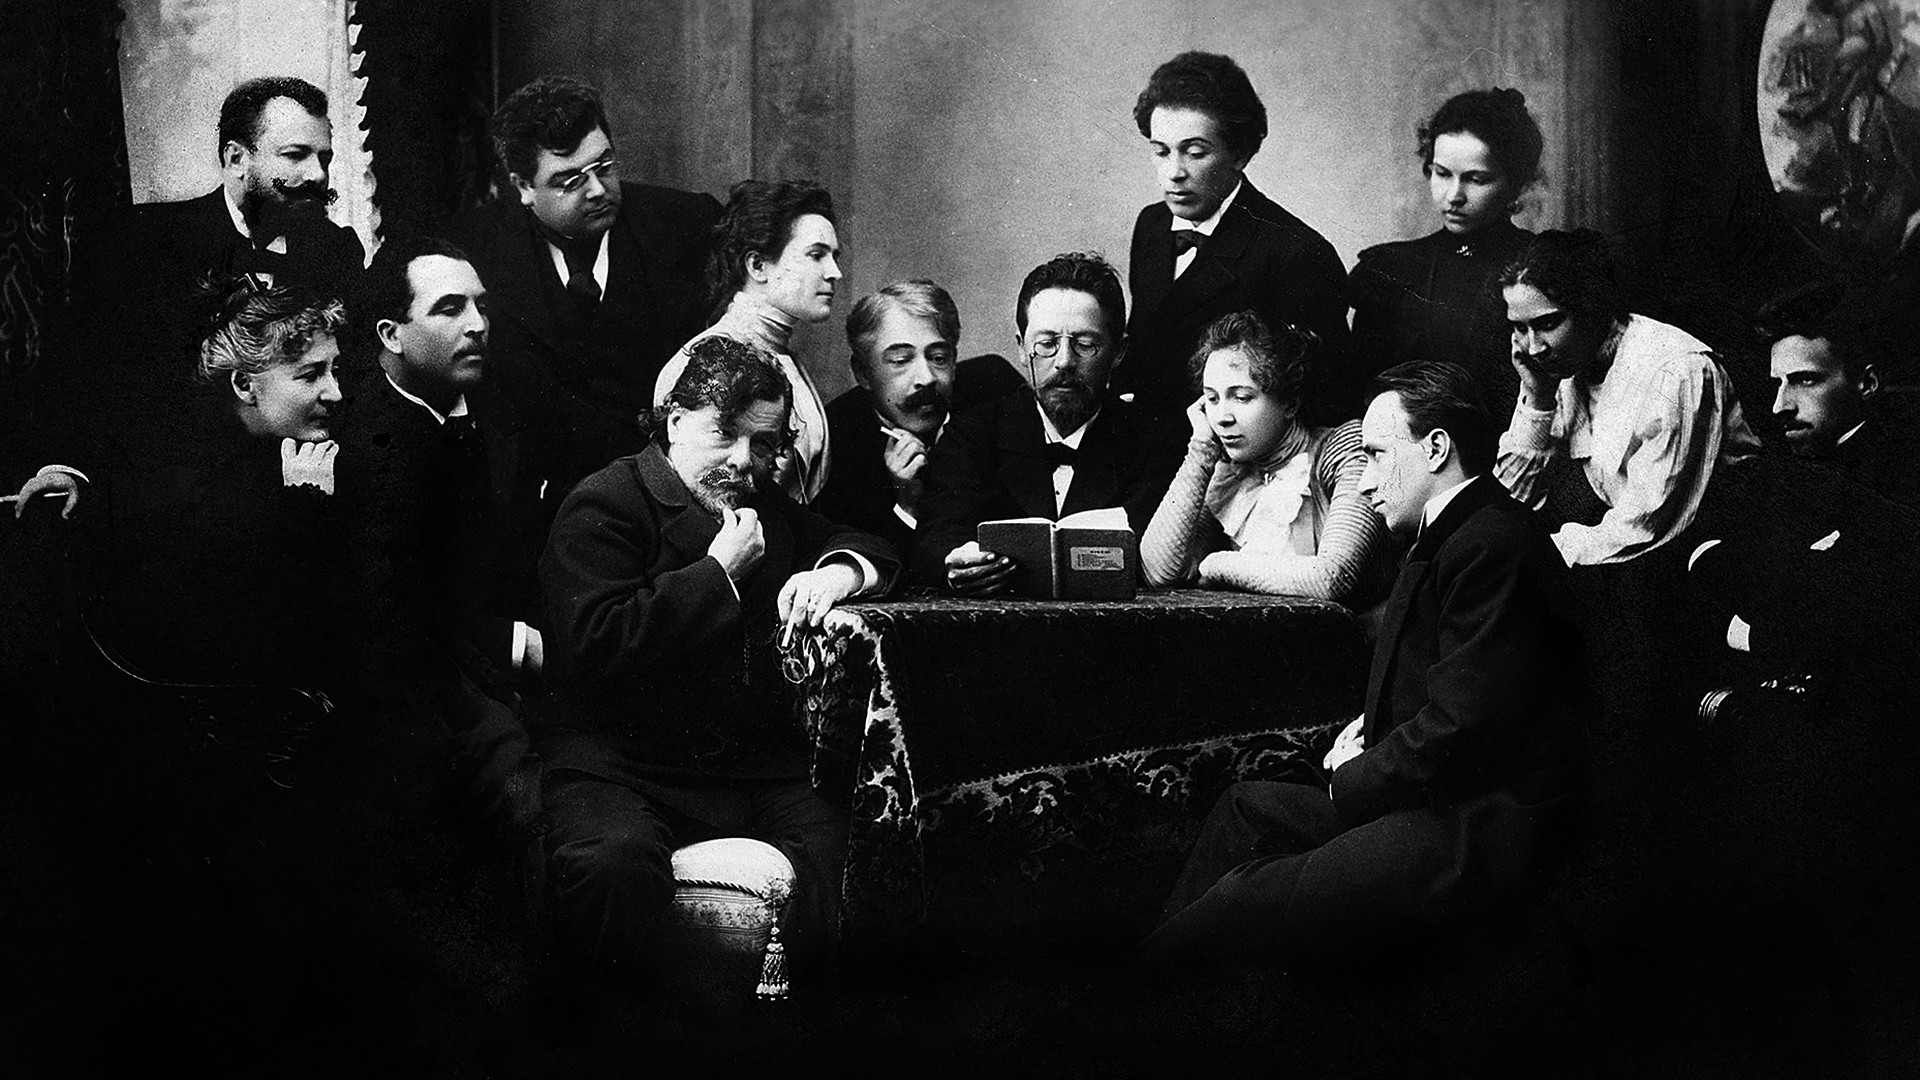 Chekhov reading 'The Seagull' to a group of actors of the Moscow Art Theater; among them are Konstantin Stanislavsky (left from Chekhov), Olga Knipper (second left from Chekhov), Vsevolod Meyerhold (right), and Vladimir Nemirovich Danchenko (stands left)